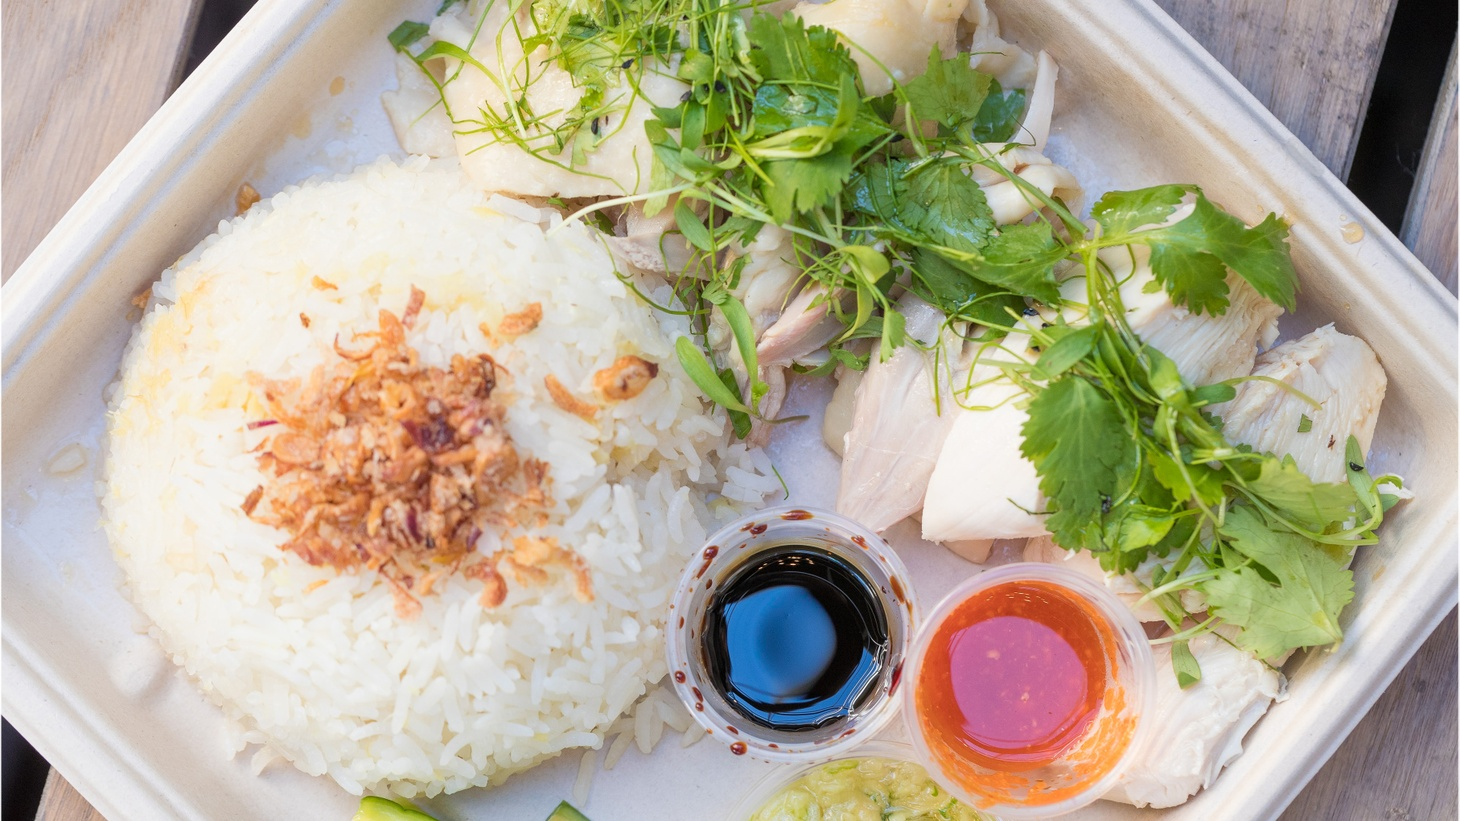 LA Times food critic Jonathan Gold wanders the Westfield Santa Anita Mall in Arcadia this week in search of the classic Hainan chicken rice.